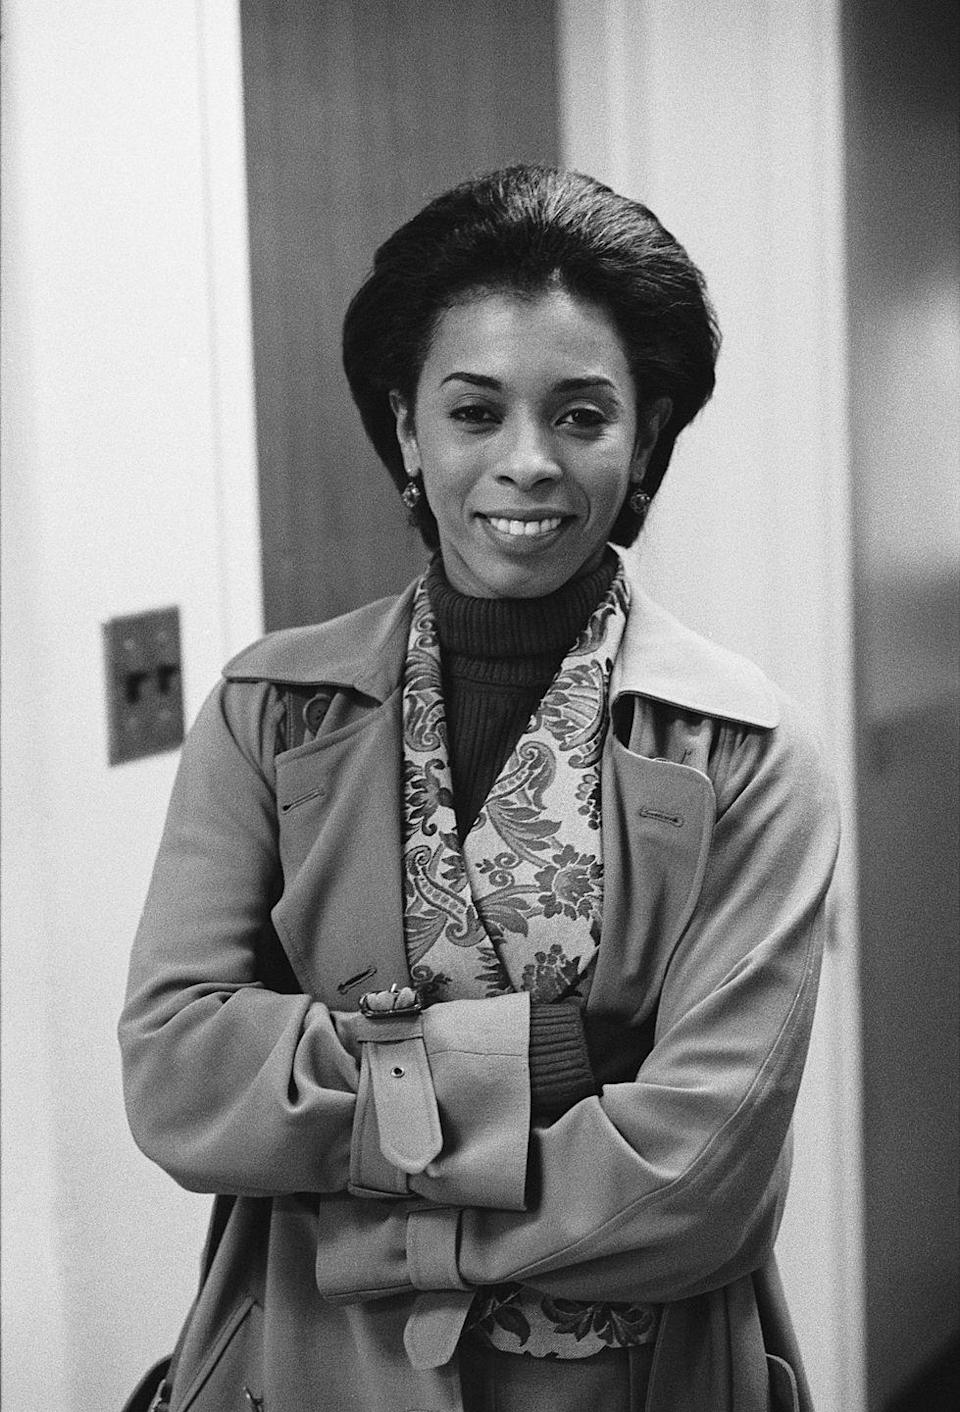 <p>Before joining the cast in 1995 as Jackie Robbins, Khandi Alexander was on <em>NewsRadio </em>and in the film <em>There's Something About Mary</em>. After leaving the show in 2001, Alexander landed a reoccurring spot on <em>Scandal</em>. </p>